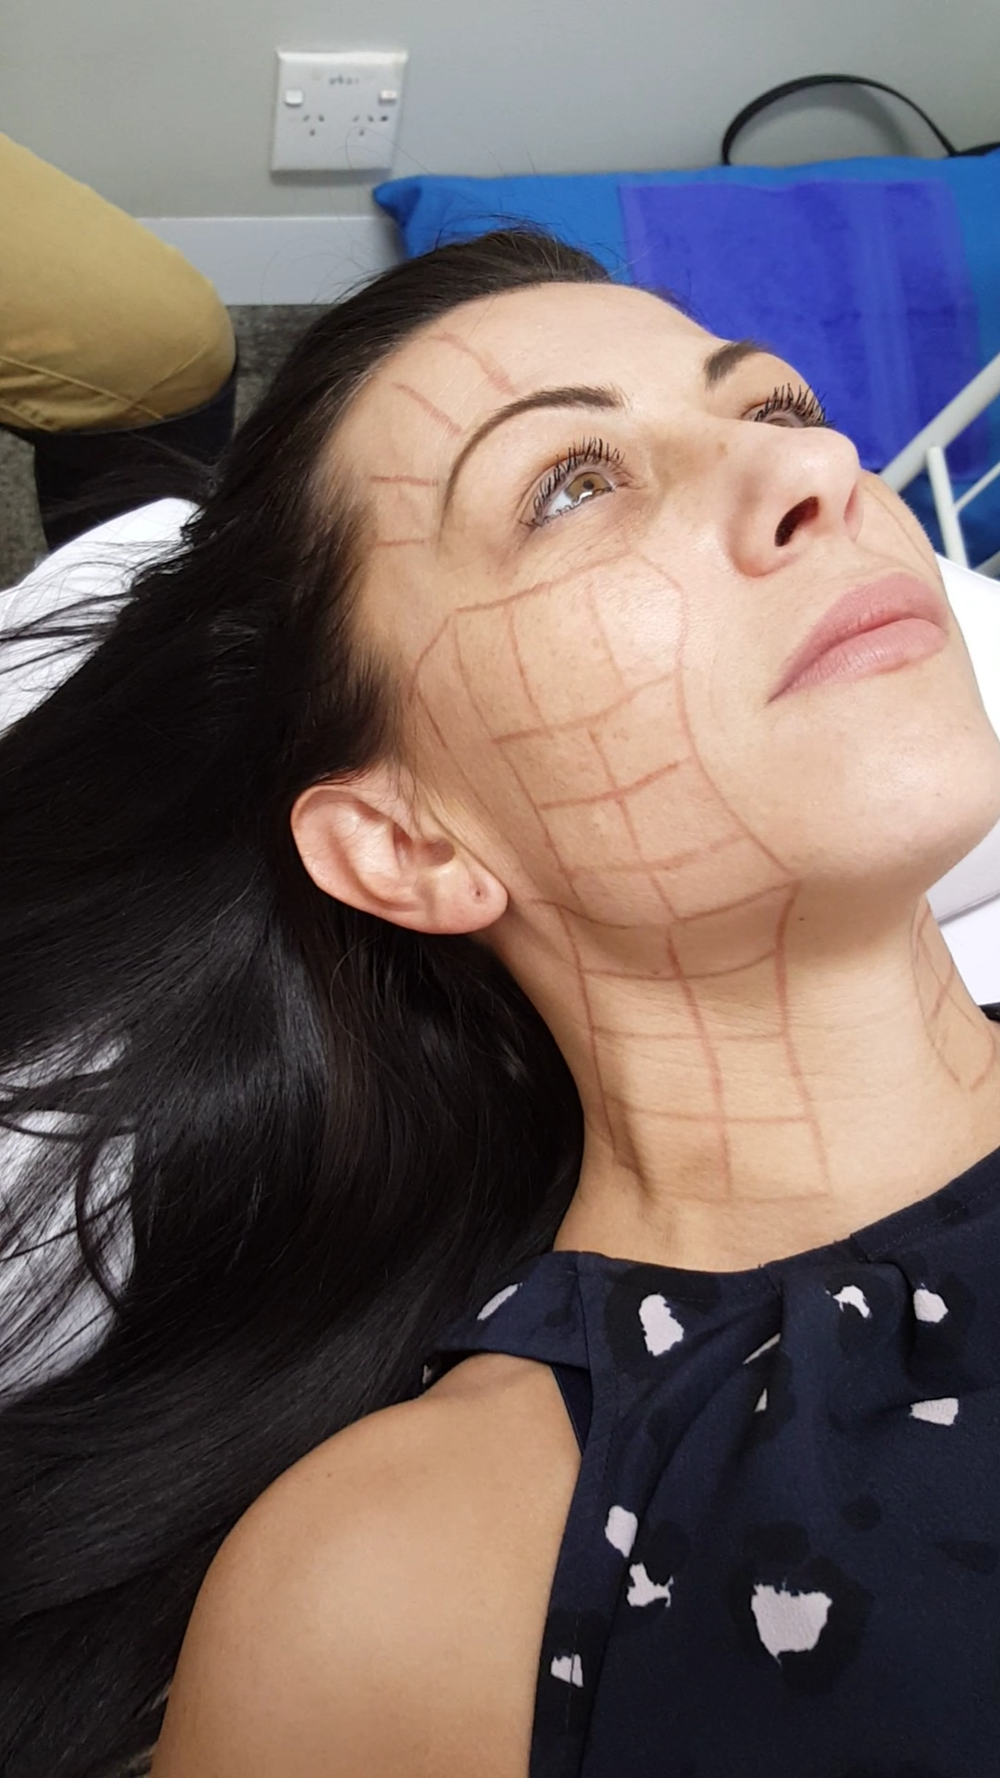 3D Clinic - HIFU Non-surgical facelift